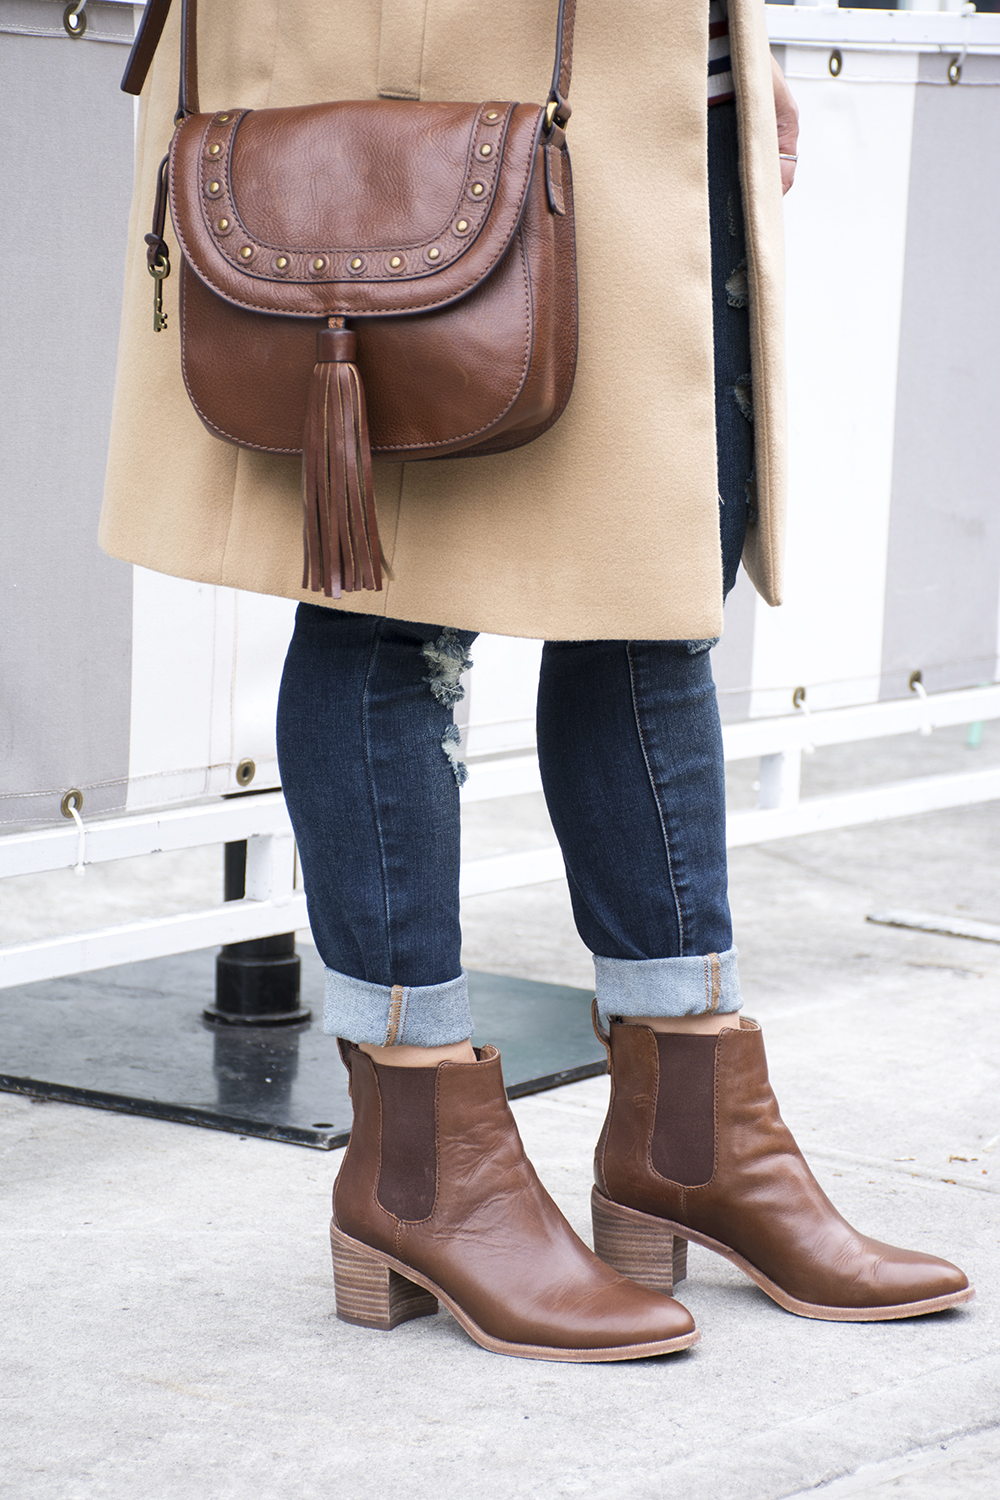 09nyc-newyork-city-leather-fossil-madewell-travel-fashion-style